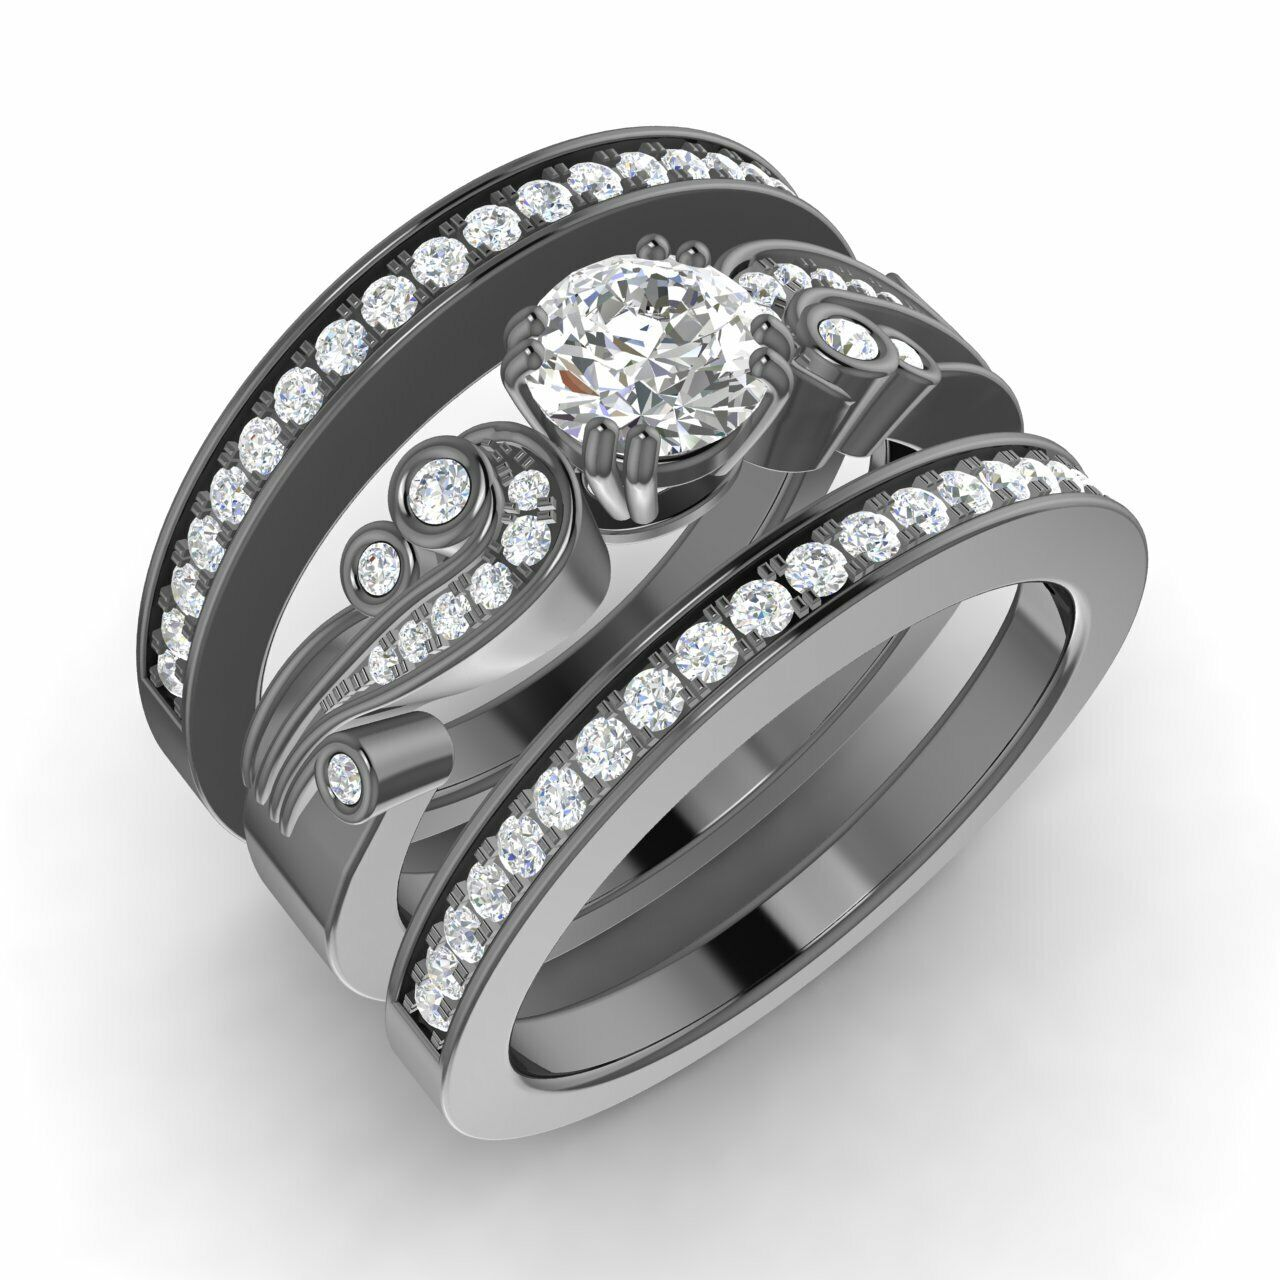 Natural Diamond Bridal Engagement Ring w/ 2 Matching Bands in 14k Black Gold